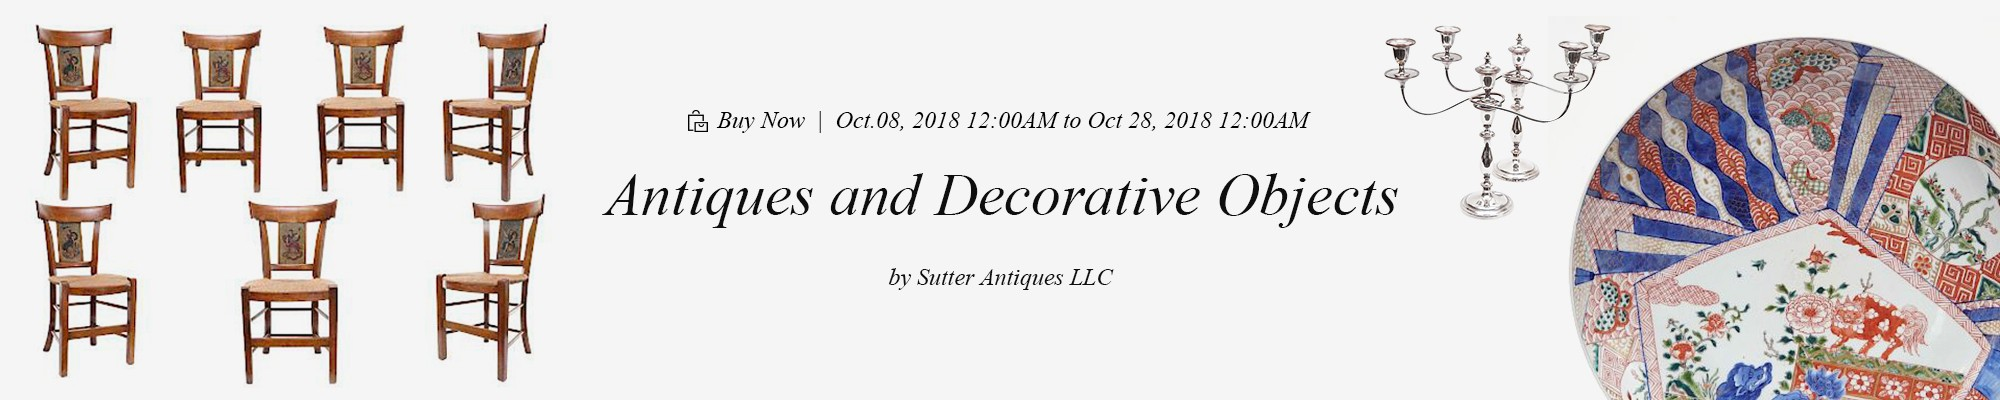 antiques-and-decorative-objects-sutter-antiques-llc